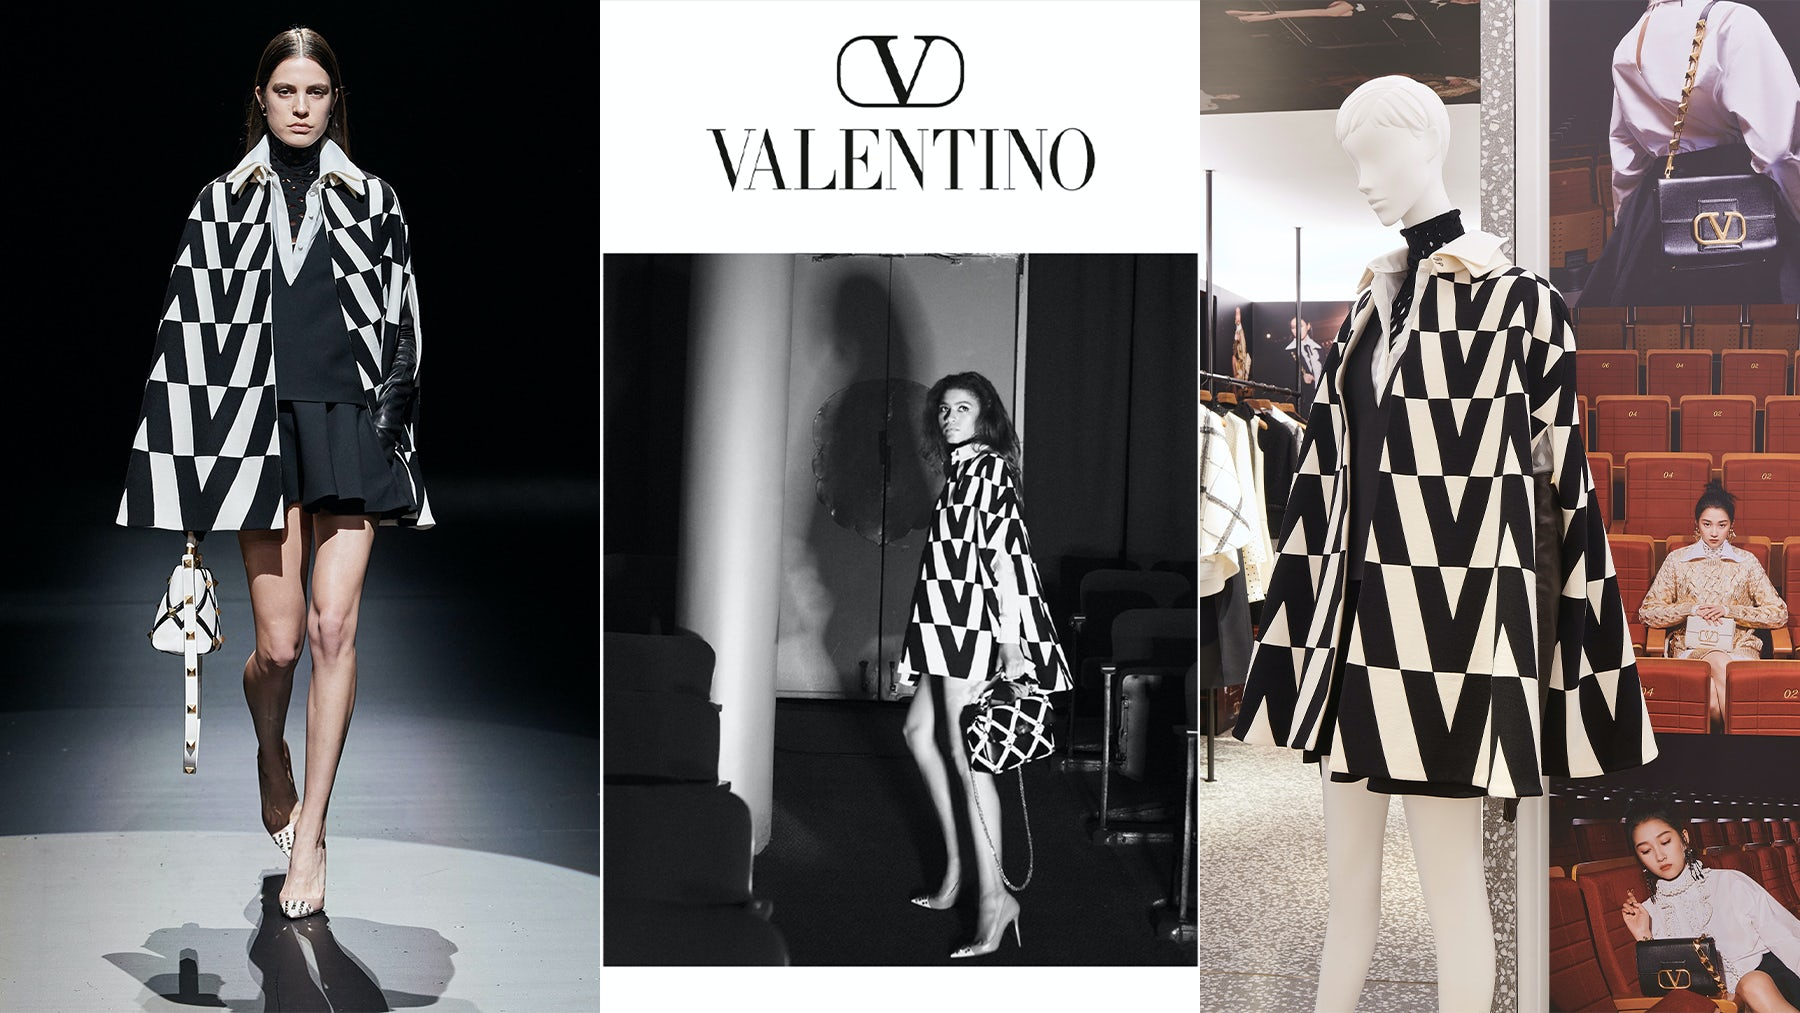 Valentino is working toward a more unified message by aligning its runway shows, campaigns, and merchandising. Left: Valentino\'s \